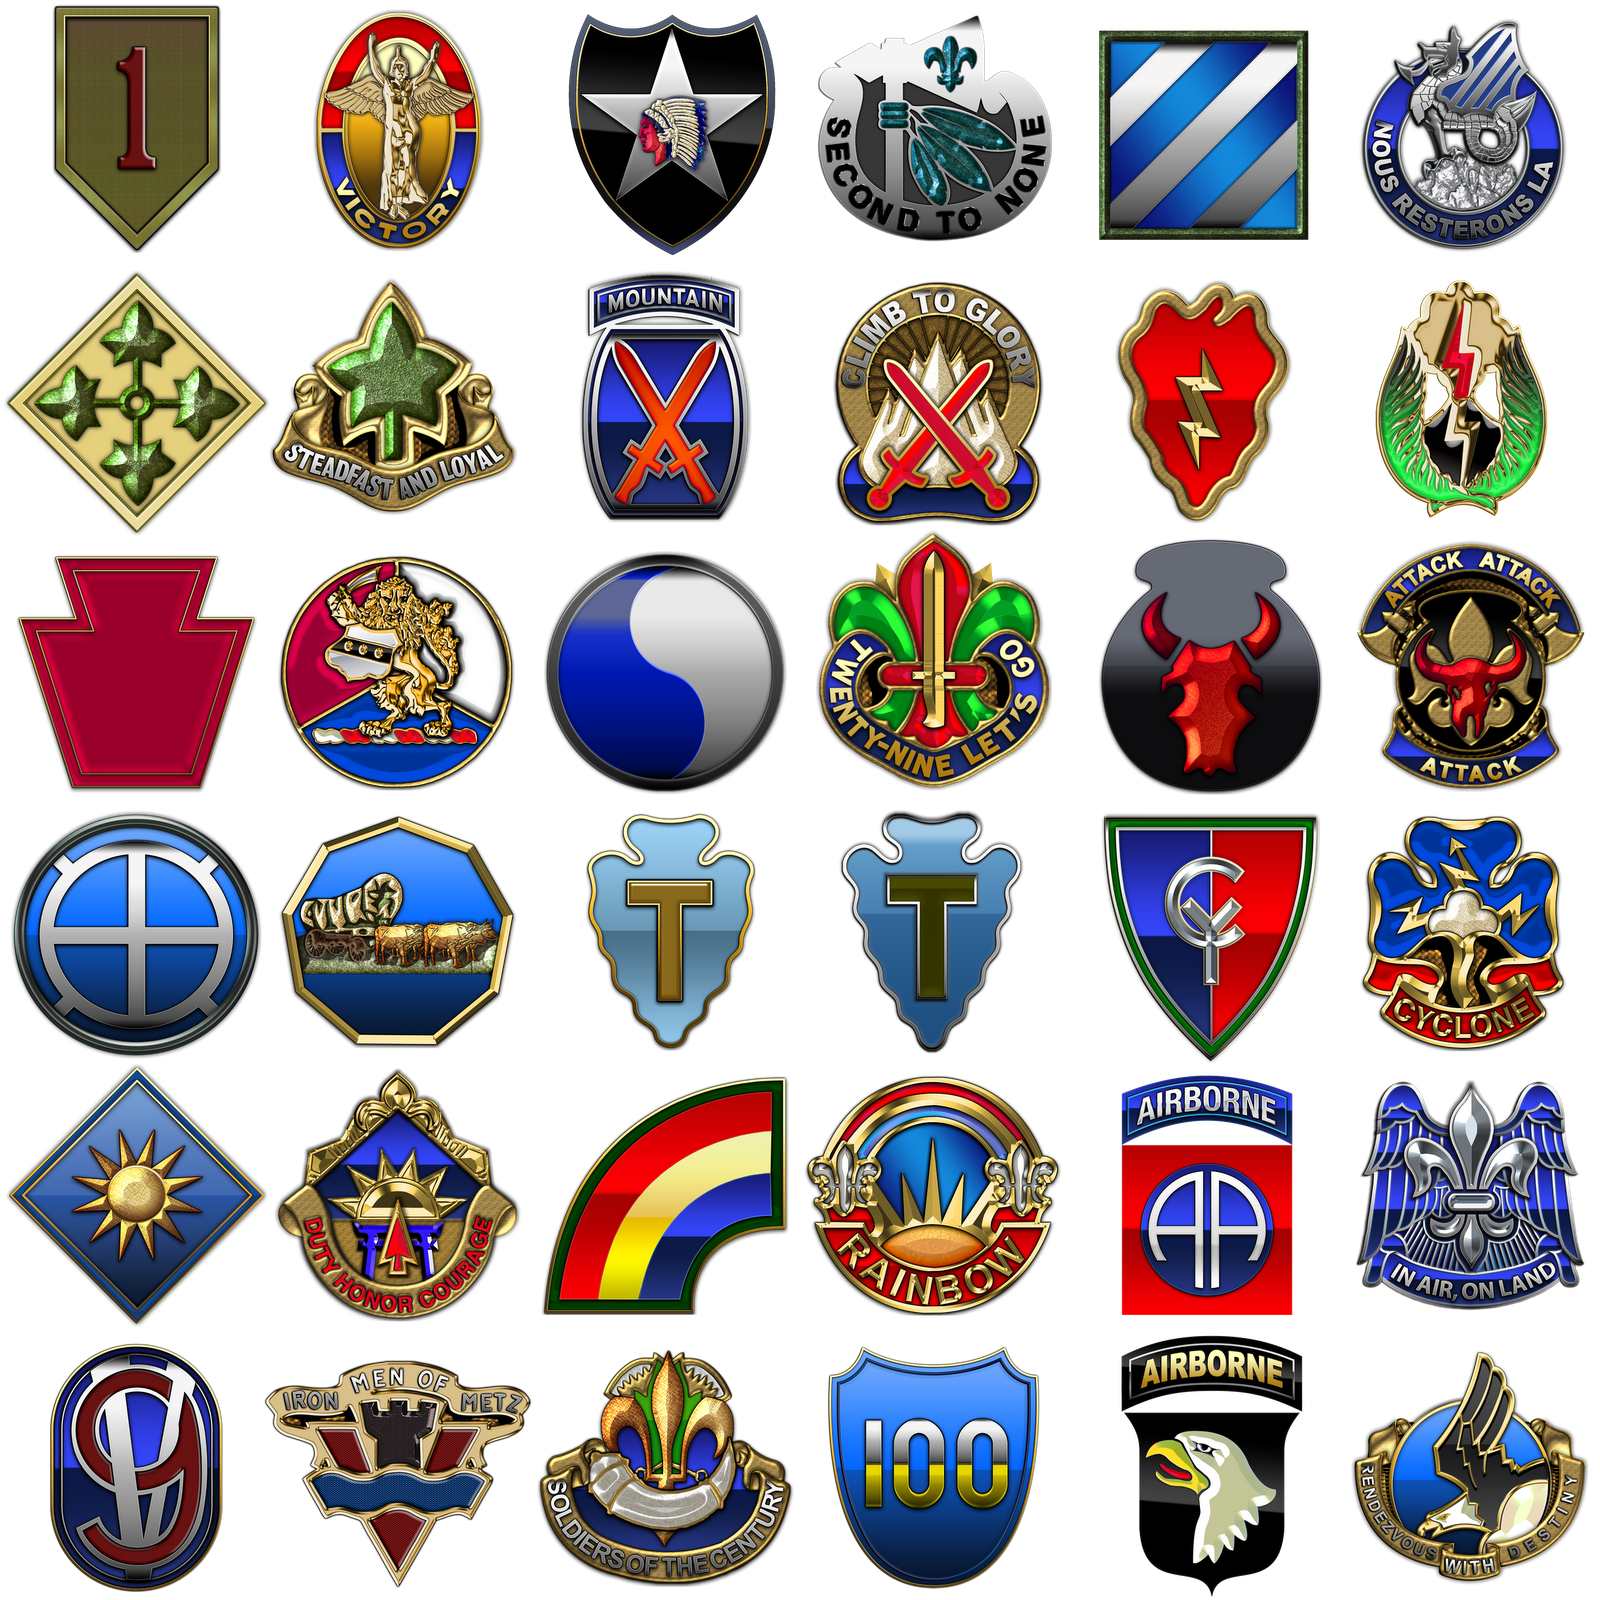 Military insignia 3d us army infantry divisions one more chapter of my military insignia project has been completed this time around i have taken on shoulder sleeve insignias and distinctive unit biocorpaavc